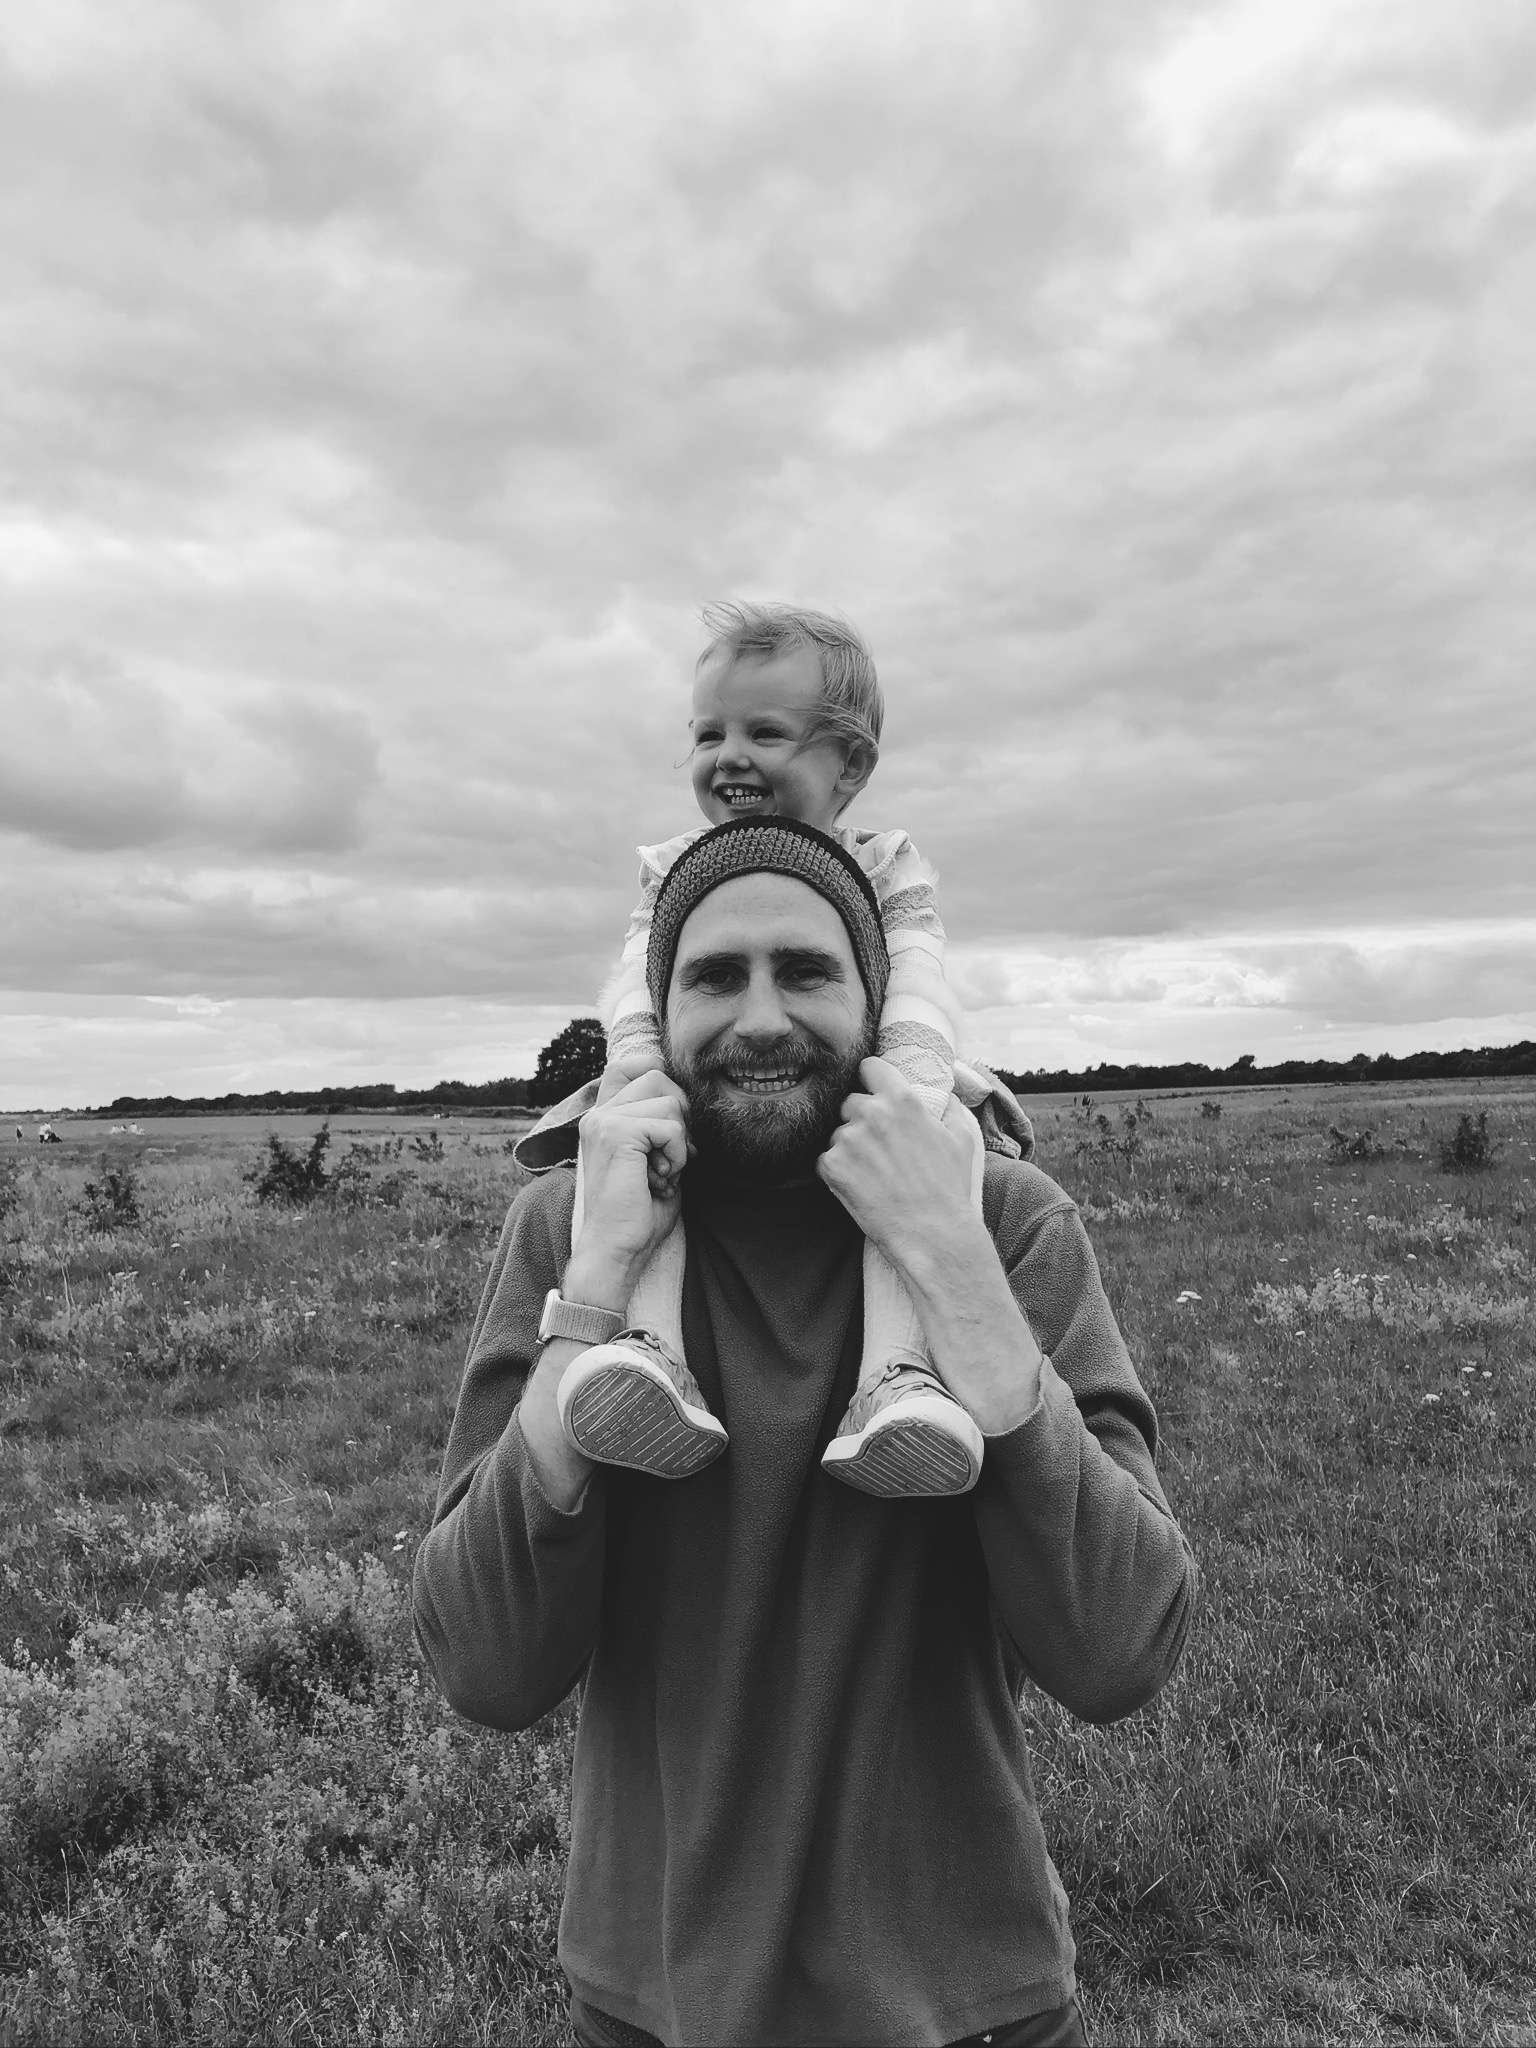 A picture of David Matthams with his daughter on his shoulders.